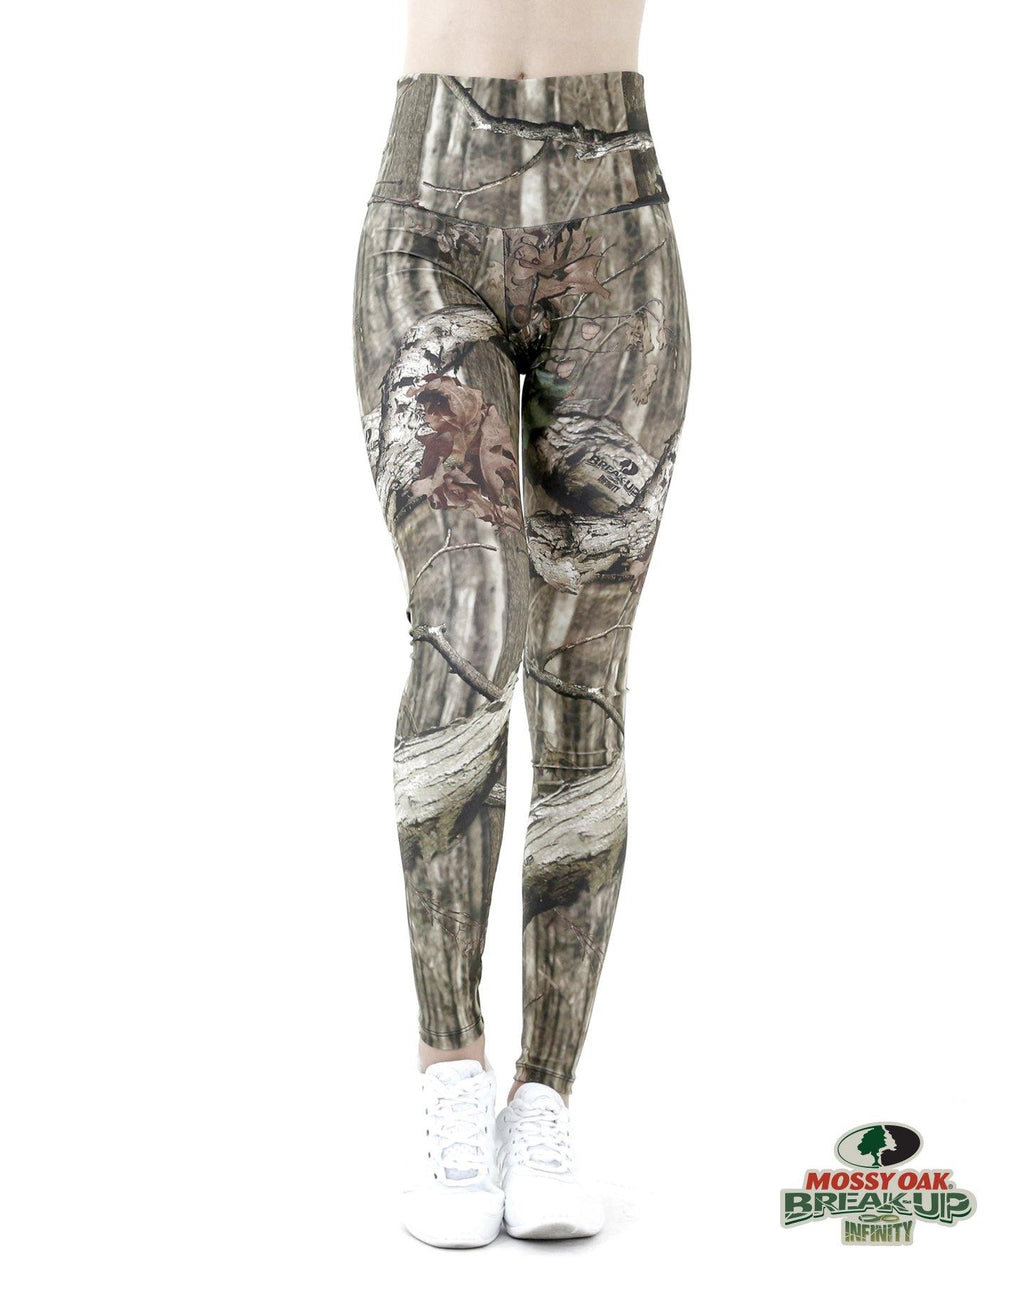 Apsara Leggings High Waist Full Length, Mossy Oak Break-Up Infinity